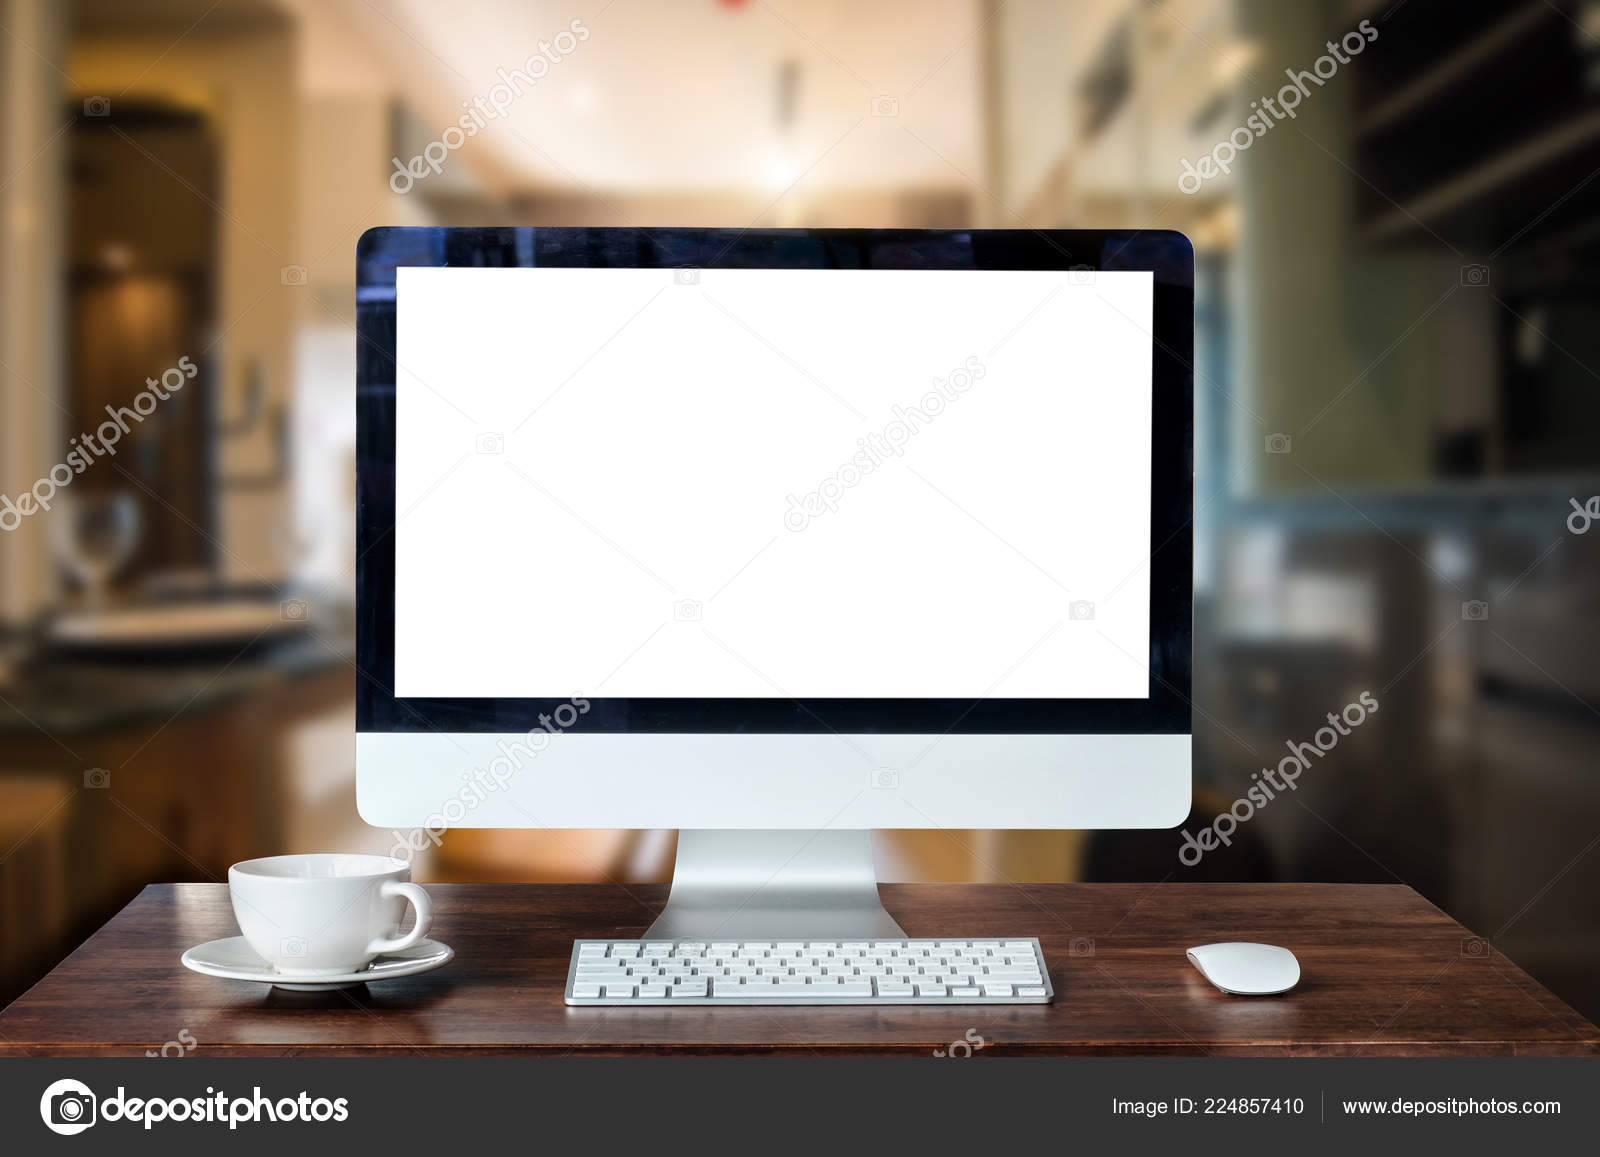 17 Workspace with computer Monitor, Keyboard, blank screen coffee cup  smartphone, and tablet on a table or White Screen Isolated in bright office  room ...